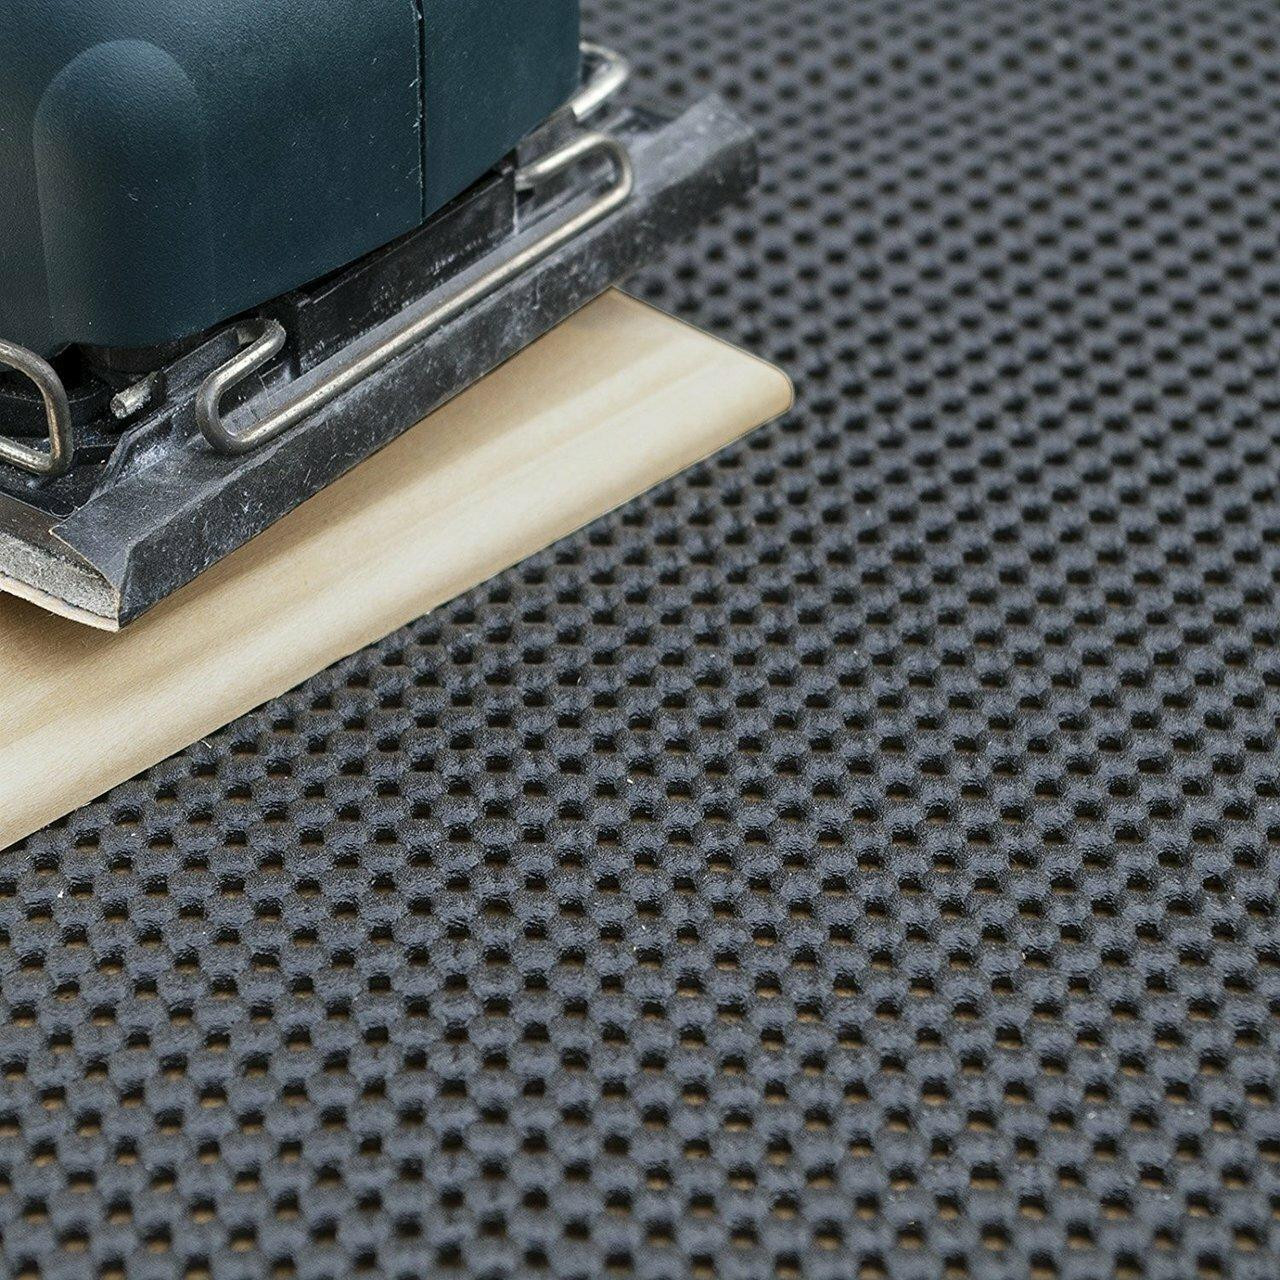 Cherry Tree Toys Router and Sanding Pad